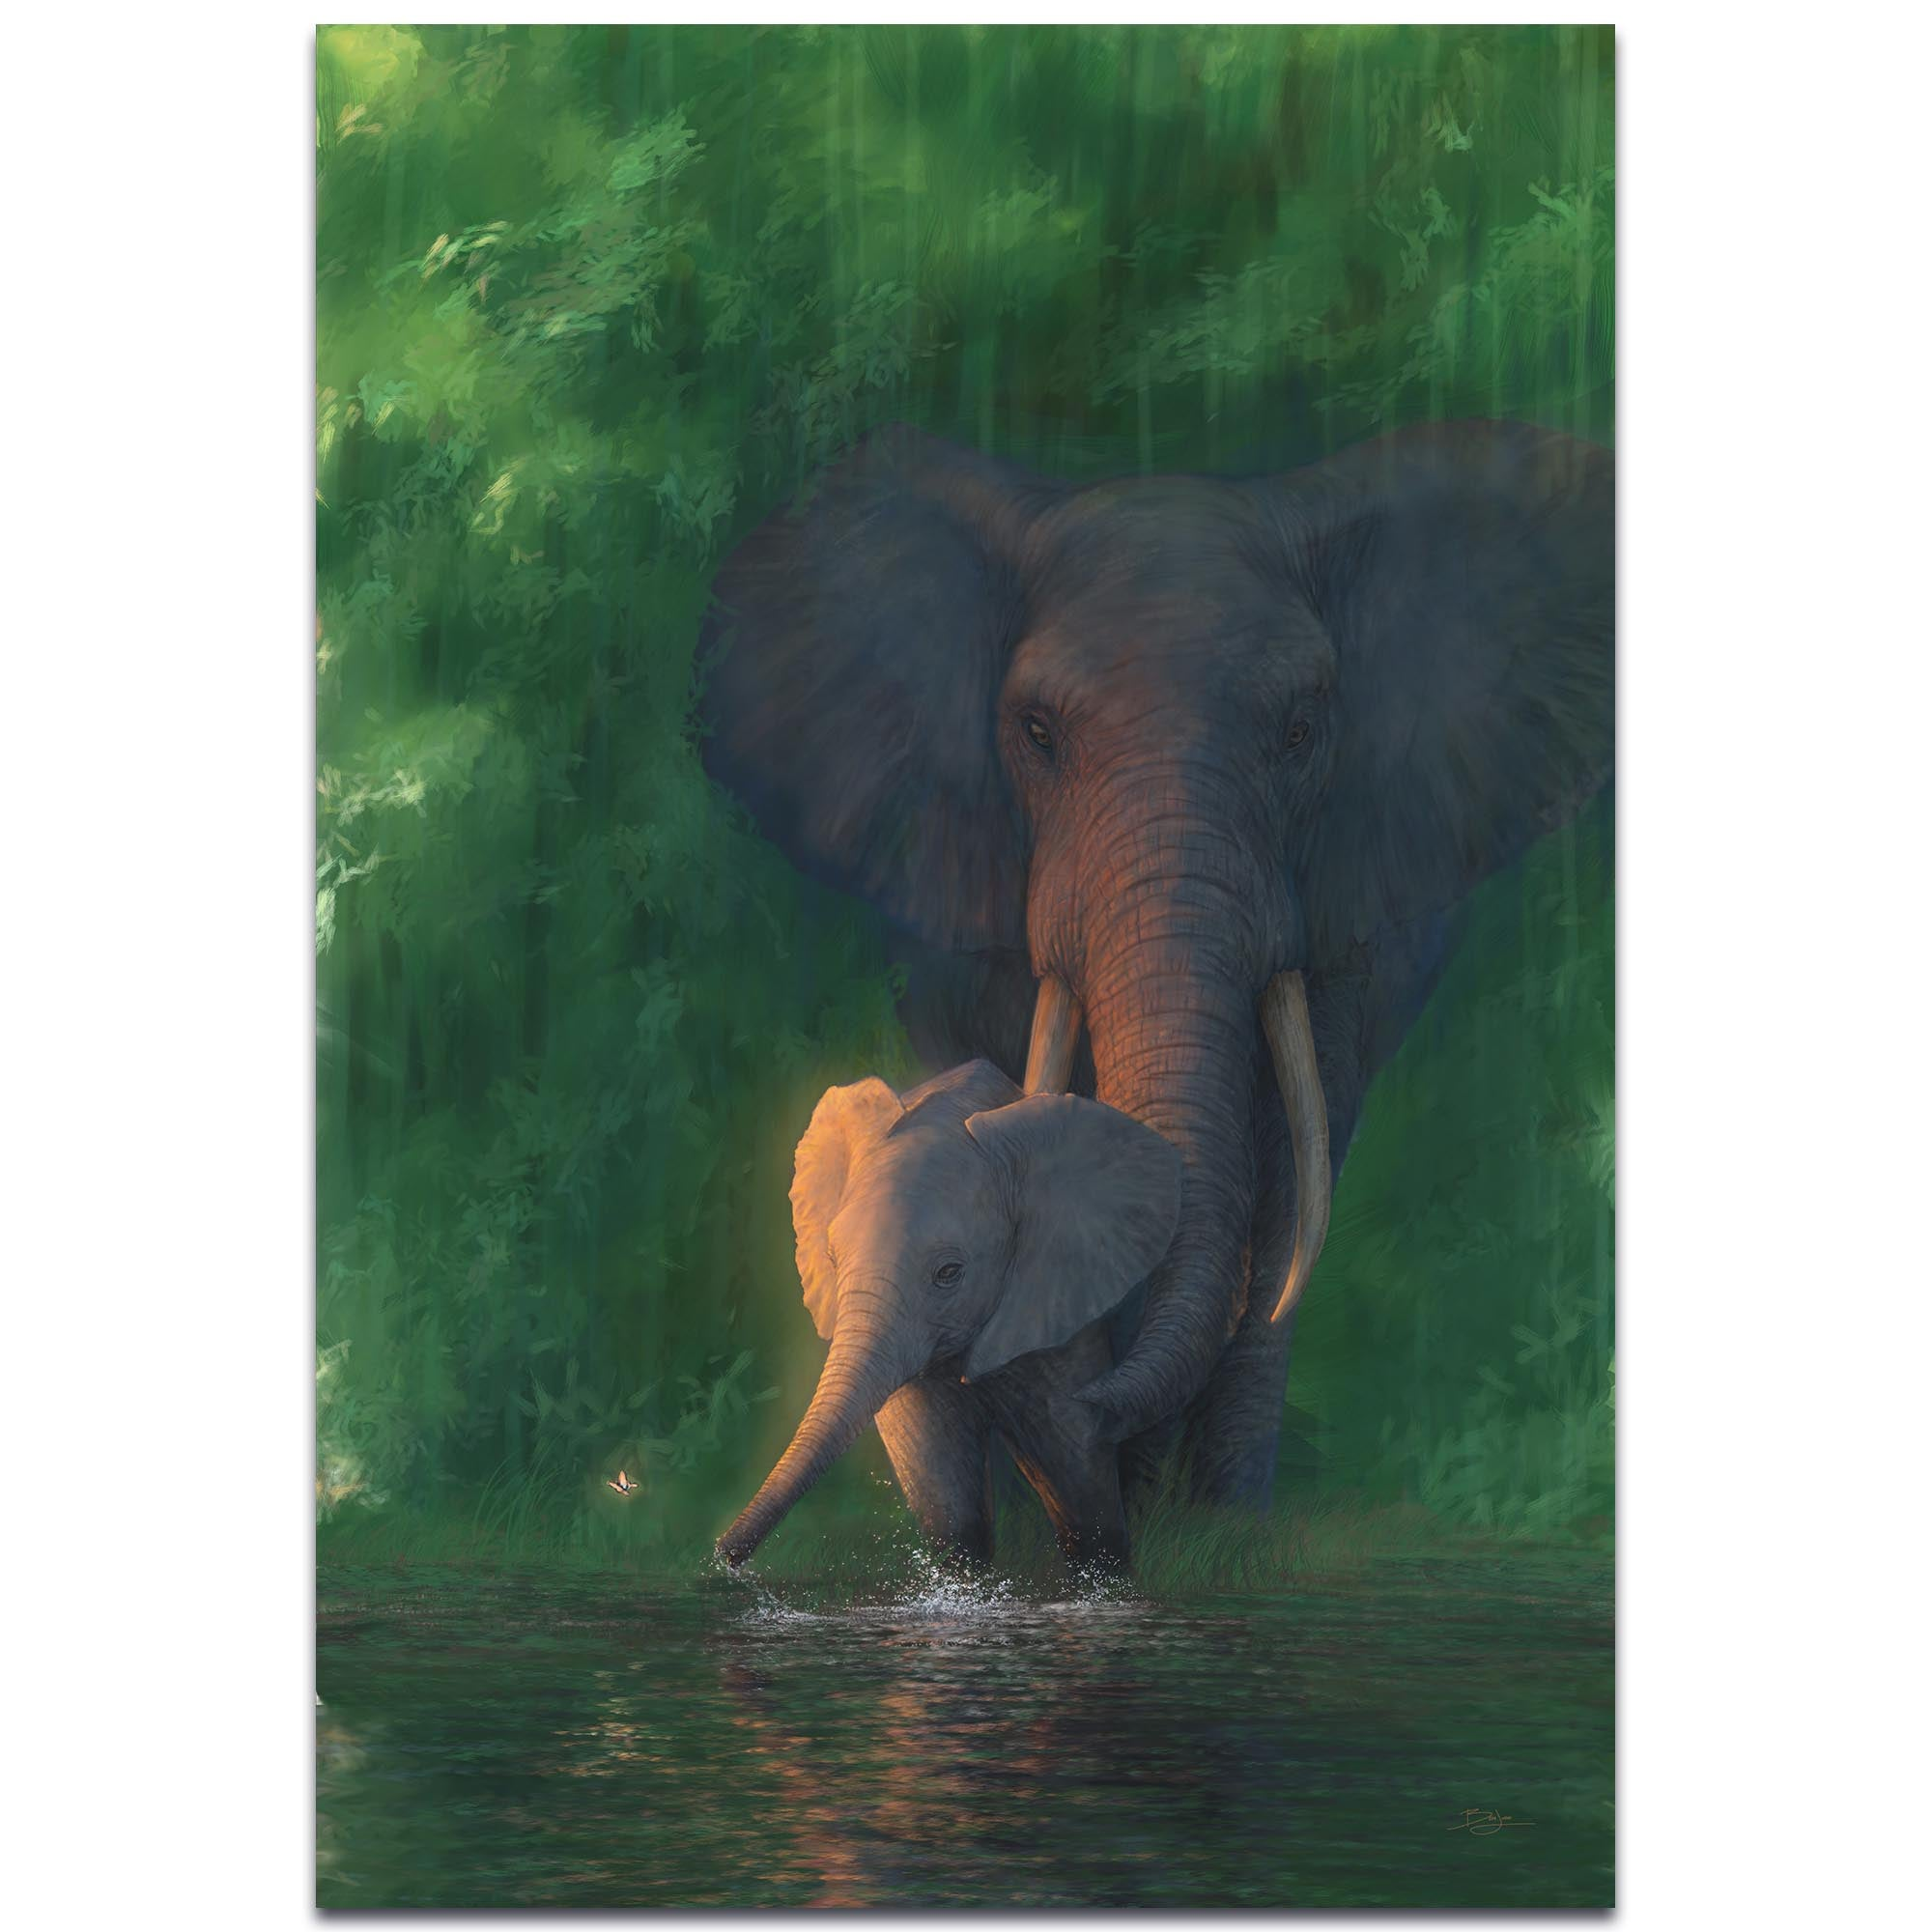 Carefree Calf by Ben Judd - Elephant Wall Art on Metal or Acrylic